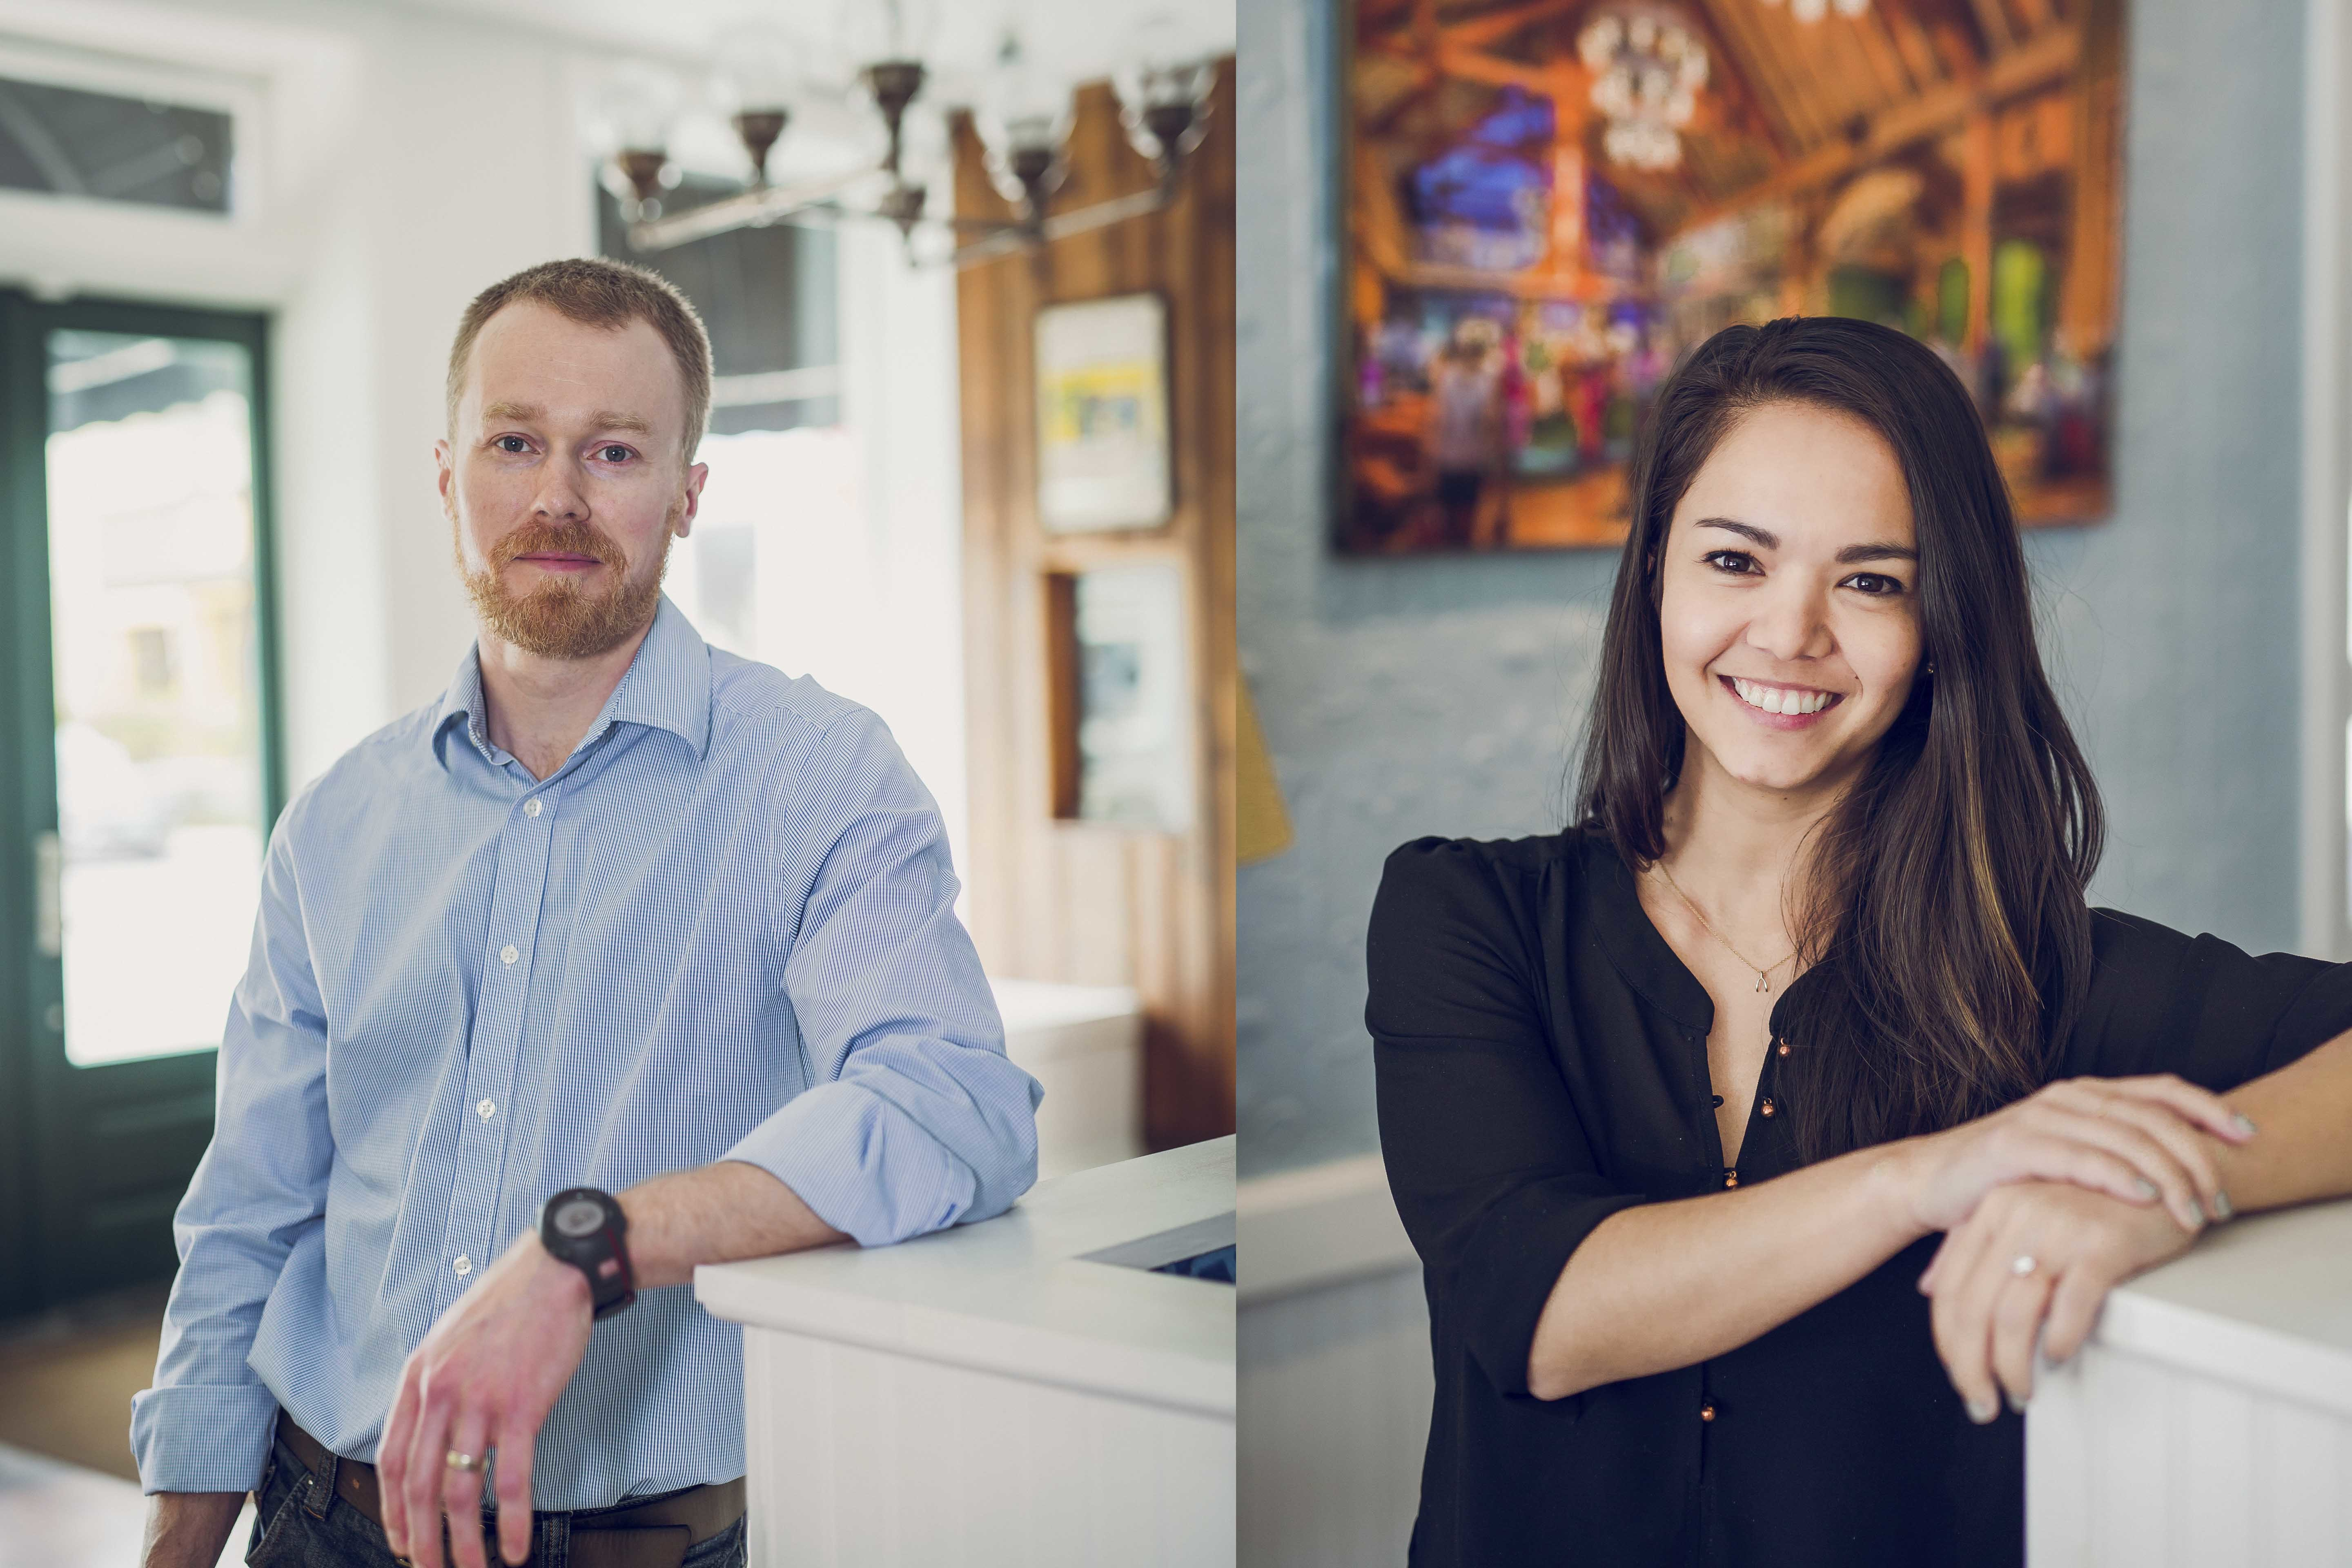 http://mcbridedesign.com/news/the-mcbride-company-announces-new-team-members-1